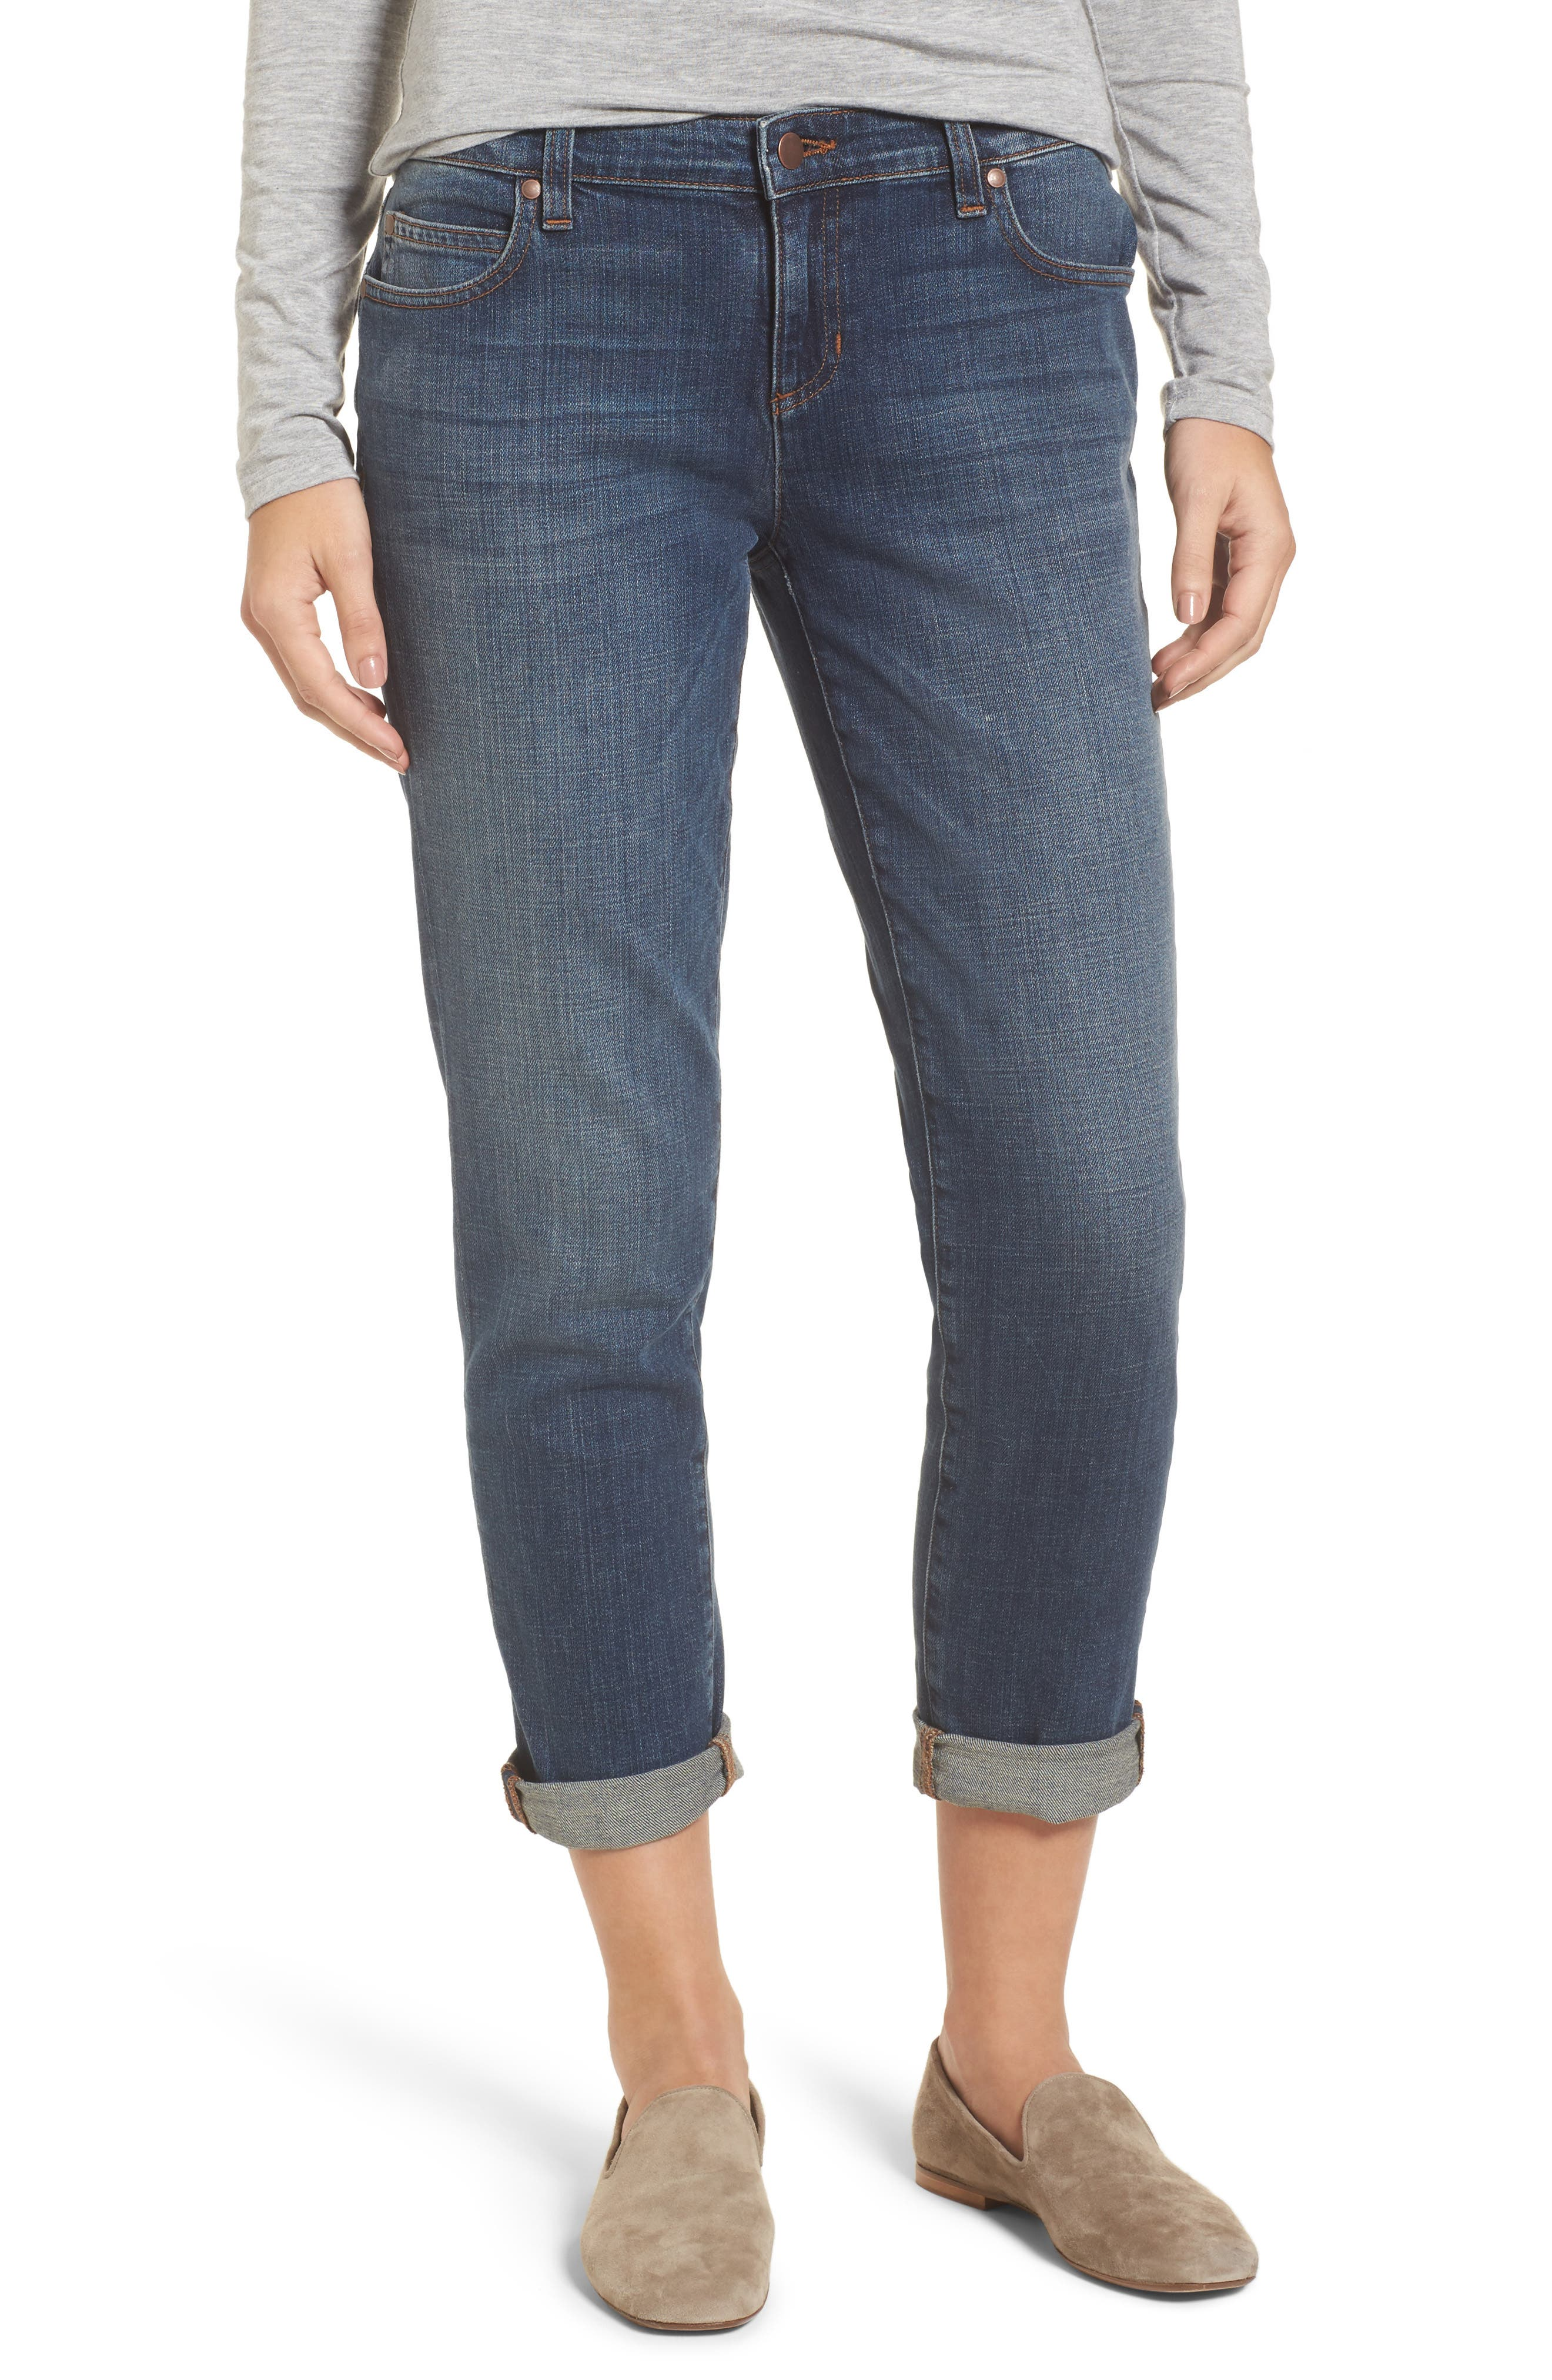 Alternate Image 1 Selected - Eileen Fisher Organic Cotton Boyfriend Jeans (Online Only) (Regular & Petite)